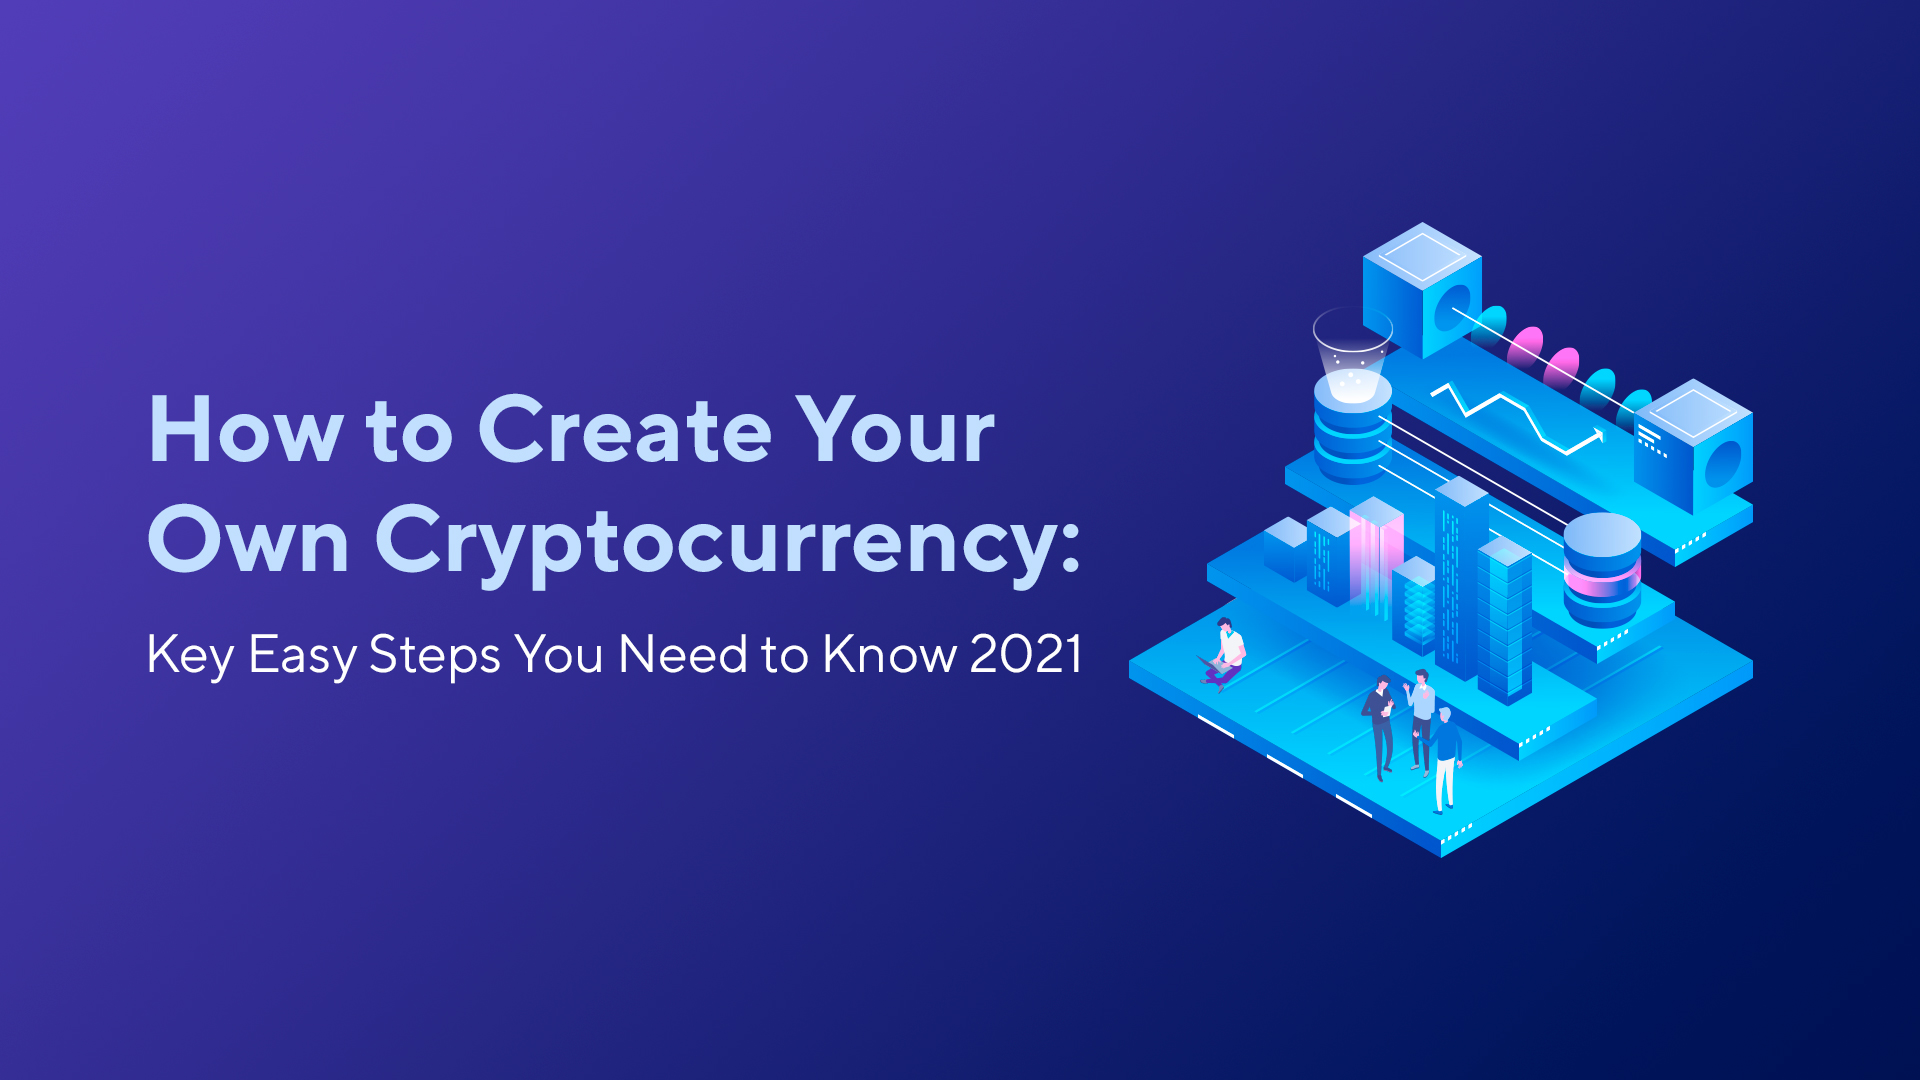 How to Create Your Own Cryptocurrency: Key Easy Steps You Need to Know 2021